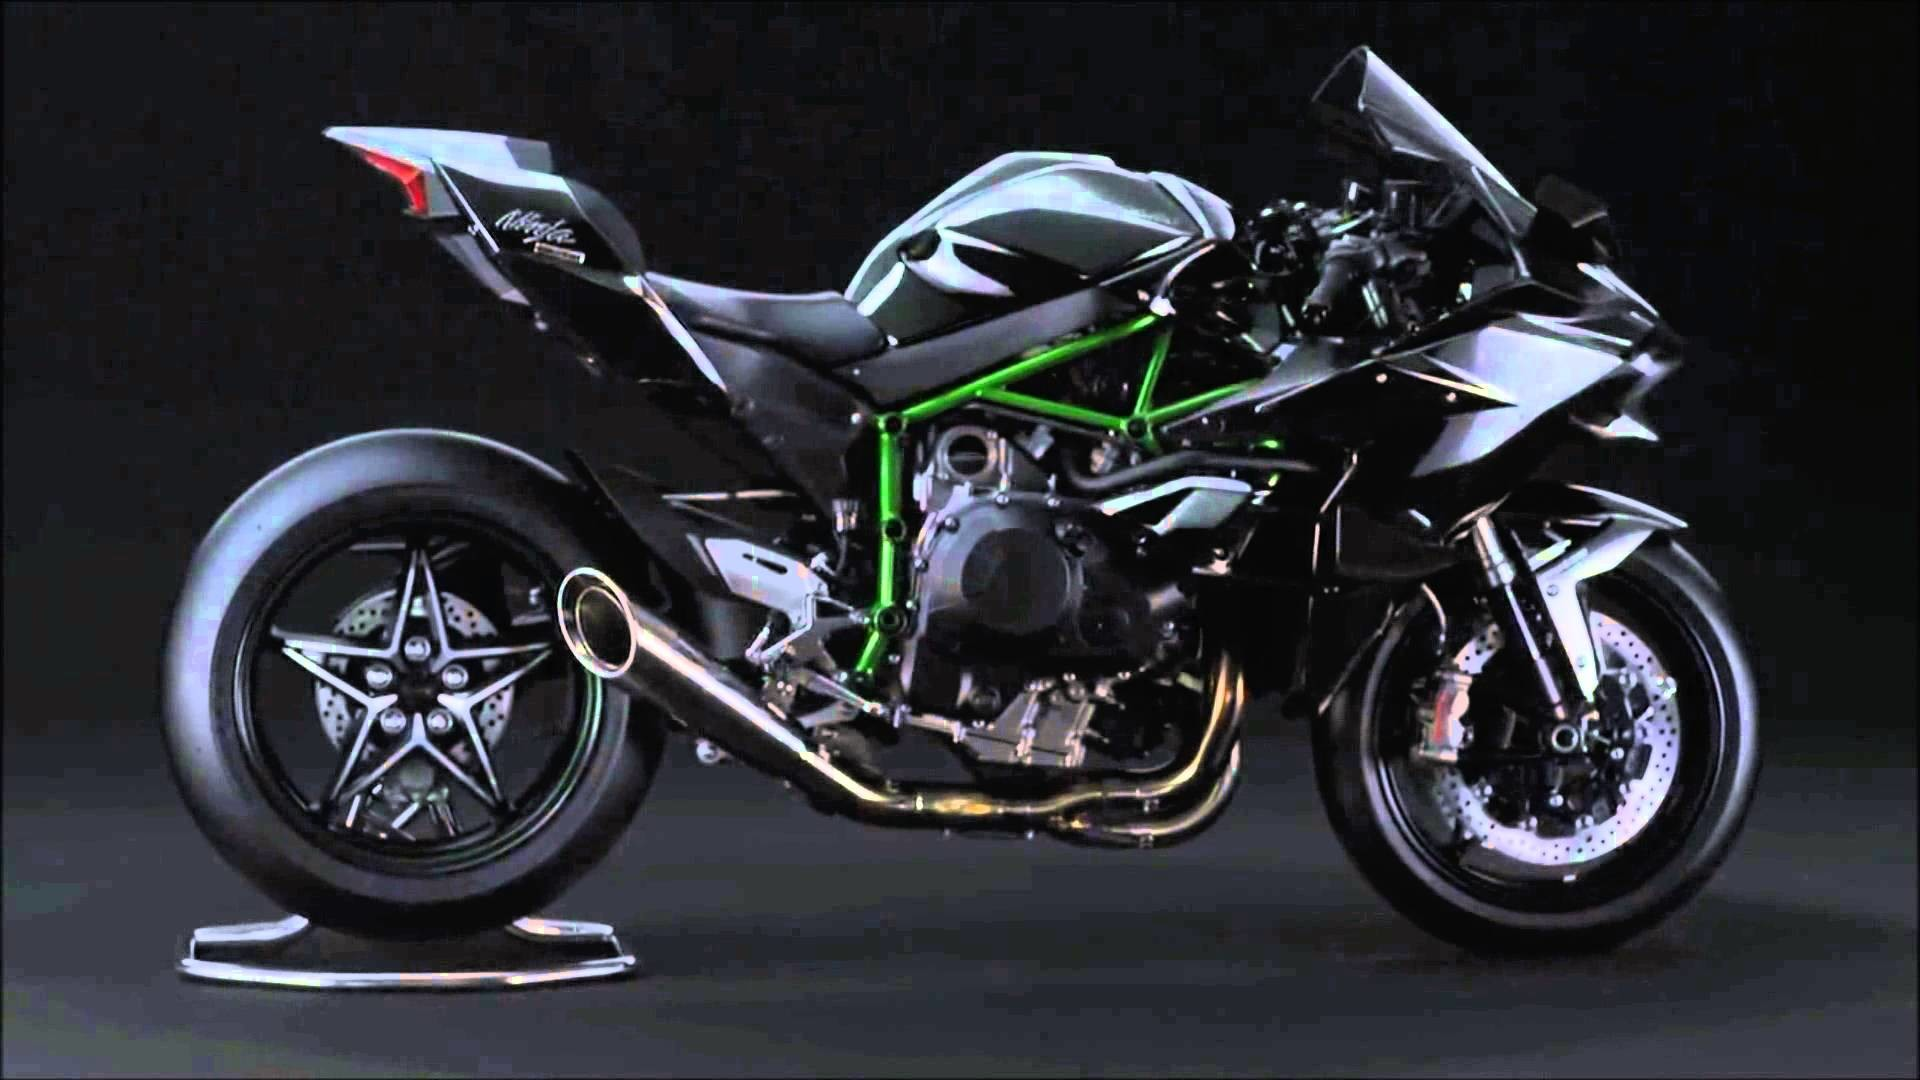 1920x1080 Kawasaki Ninja H2 Wallpaper Computer Desktop Background 5337